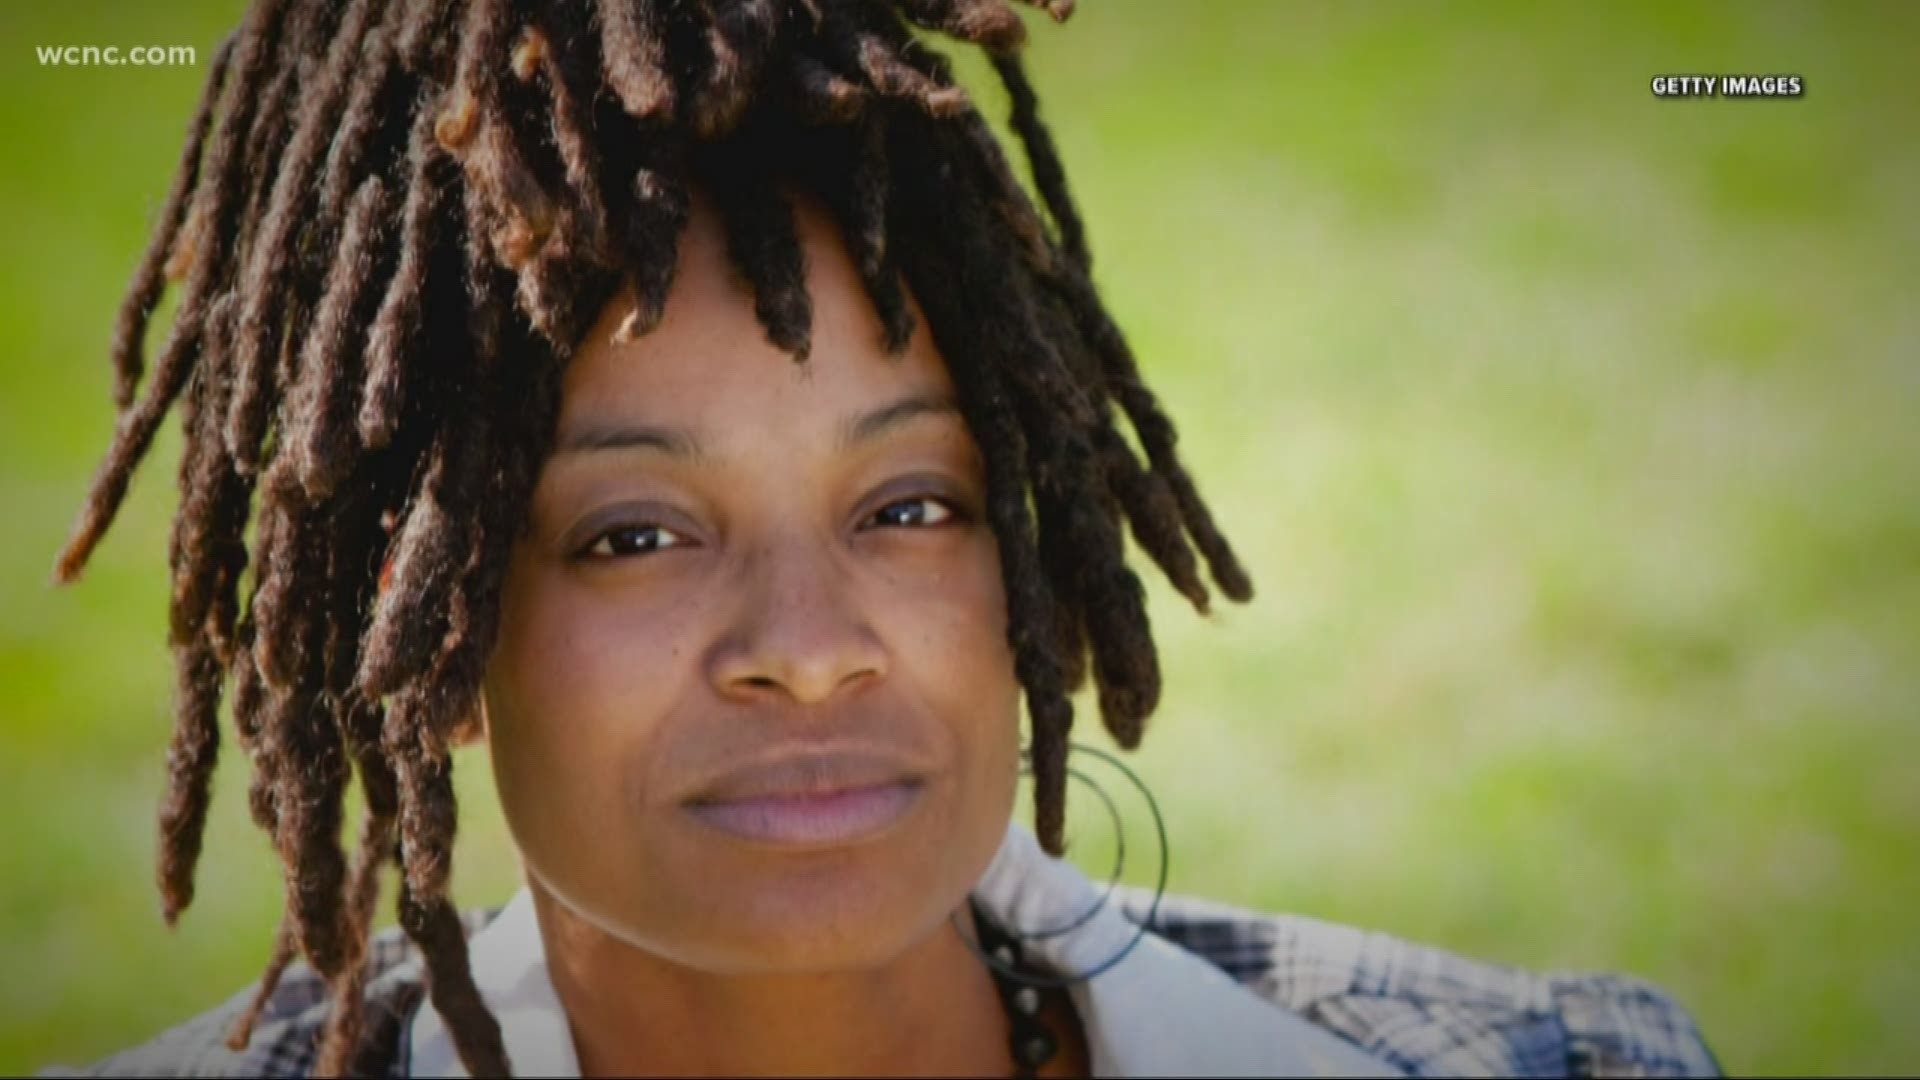 Why Natural Hairstyles Are A Civil Rights Issue For Black Women Wcnc Com